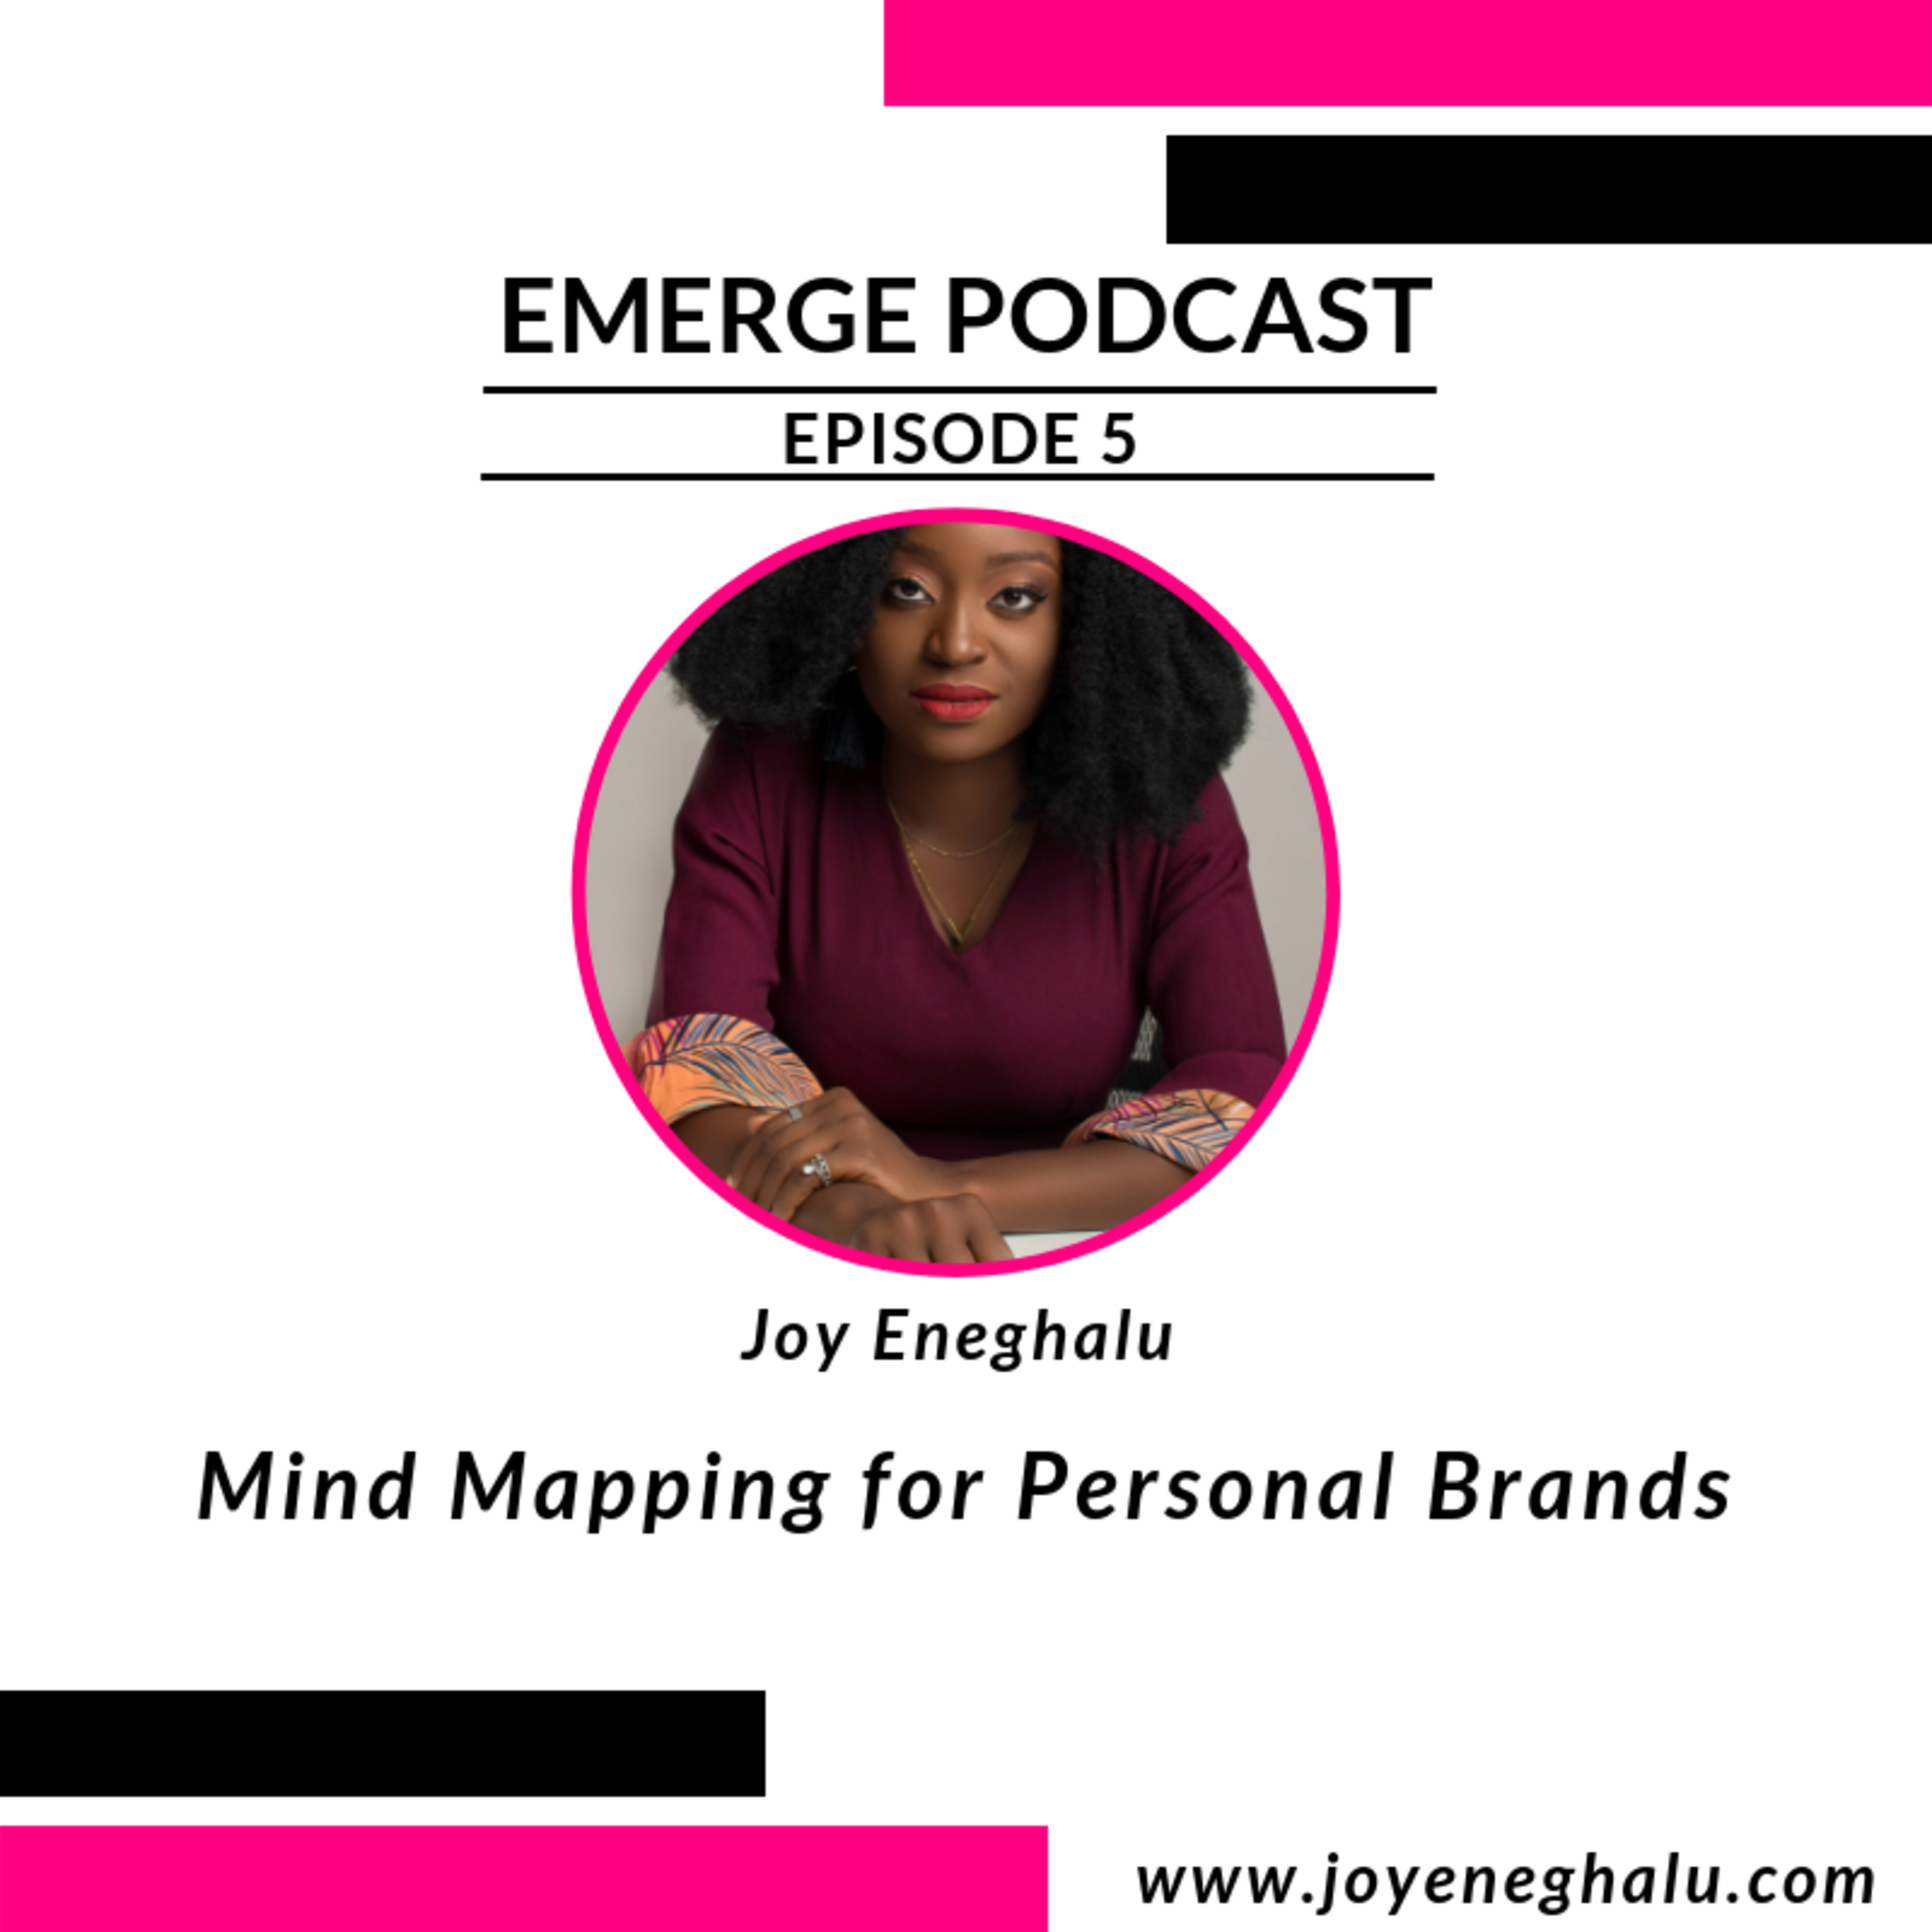 Episode 5 - Mind Mapping For Personal Brands